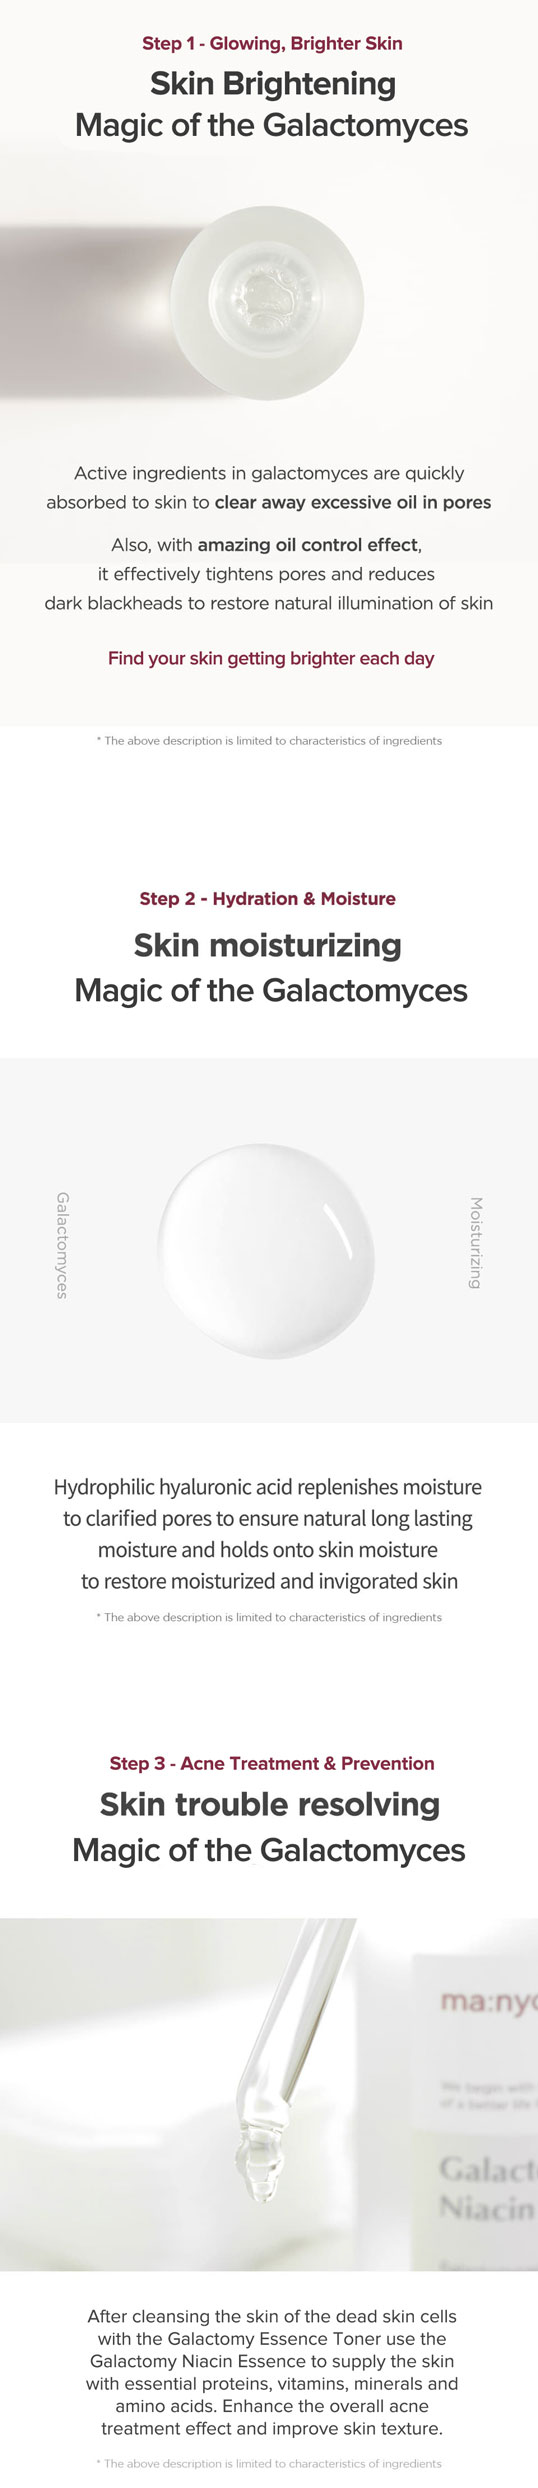 the magic of the galactomyces